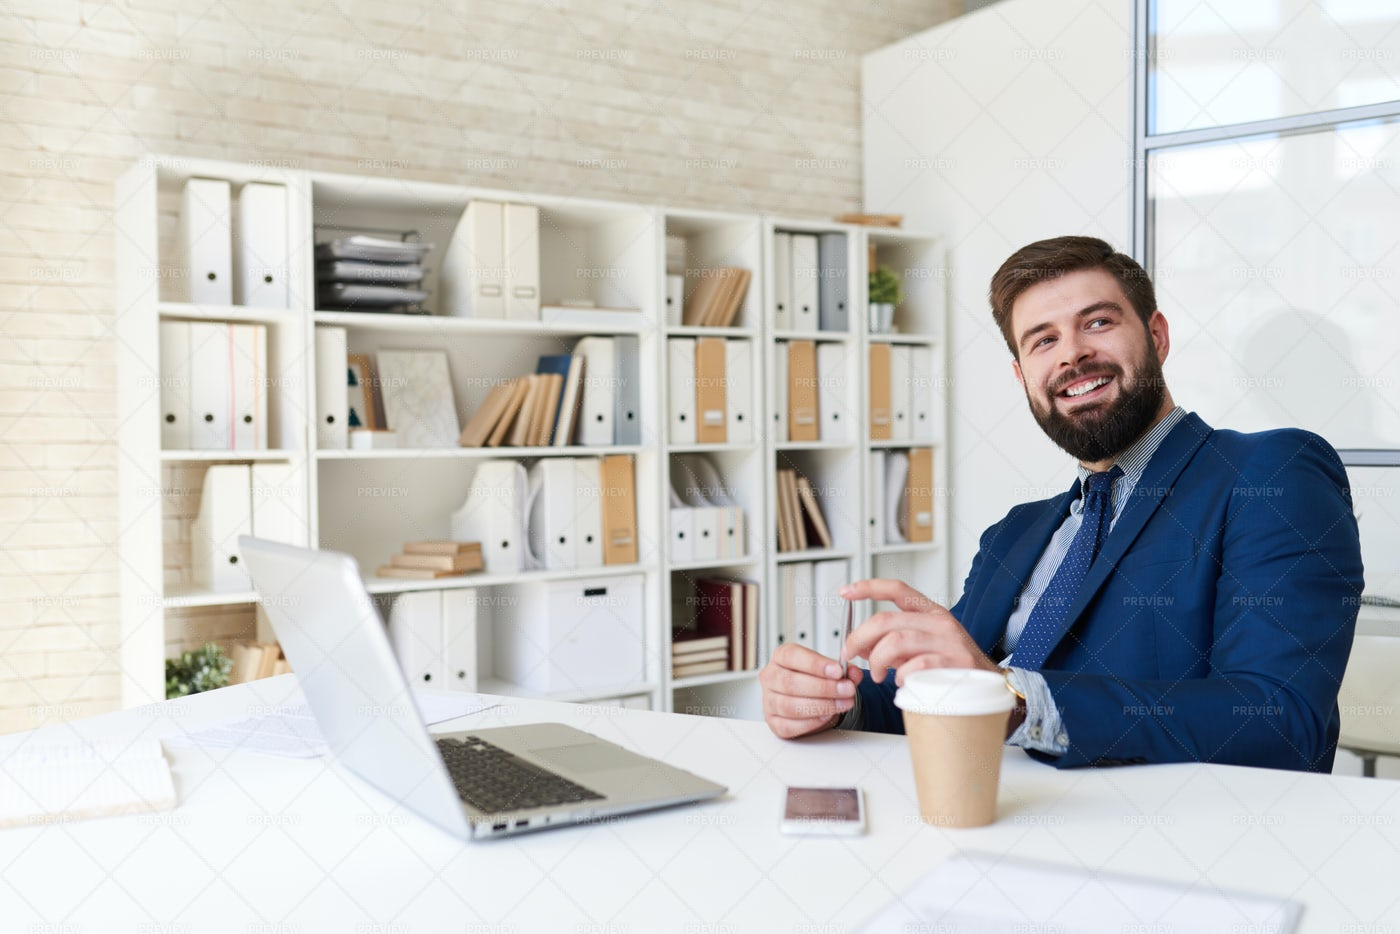 Smiling Businessman At Desk In...: Stock Photos